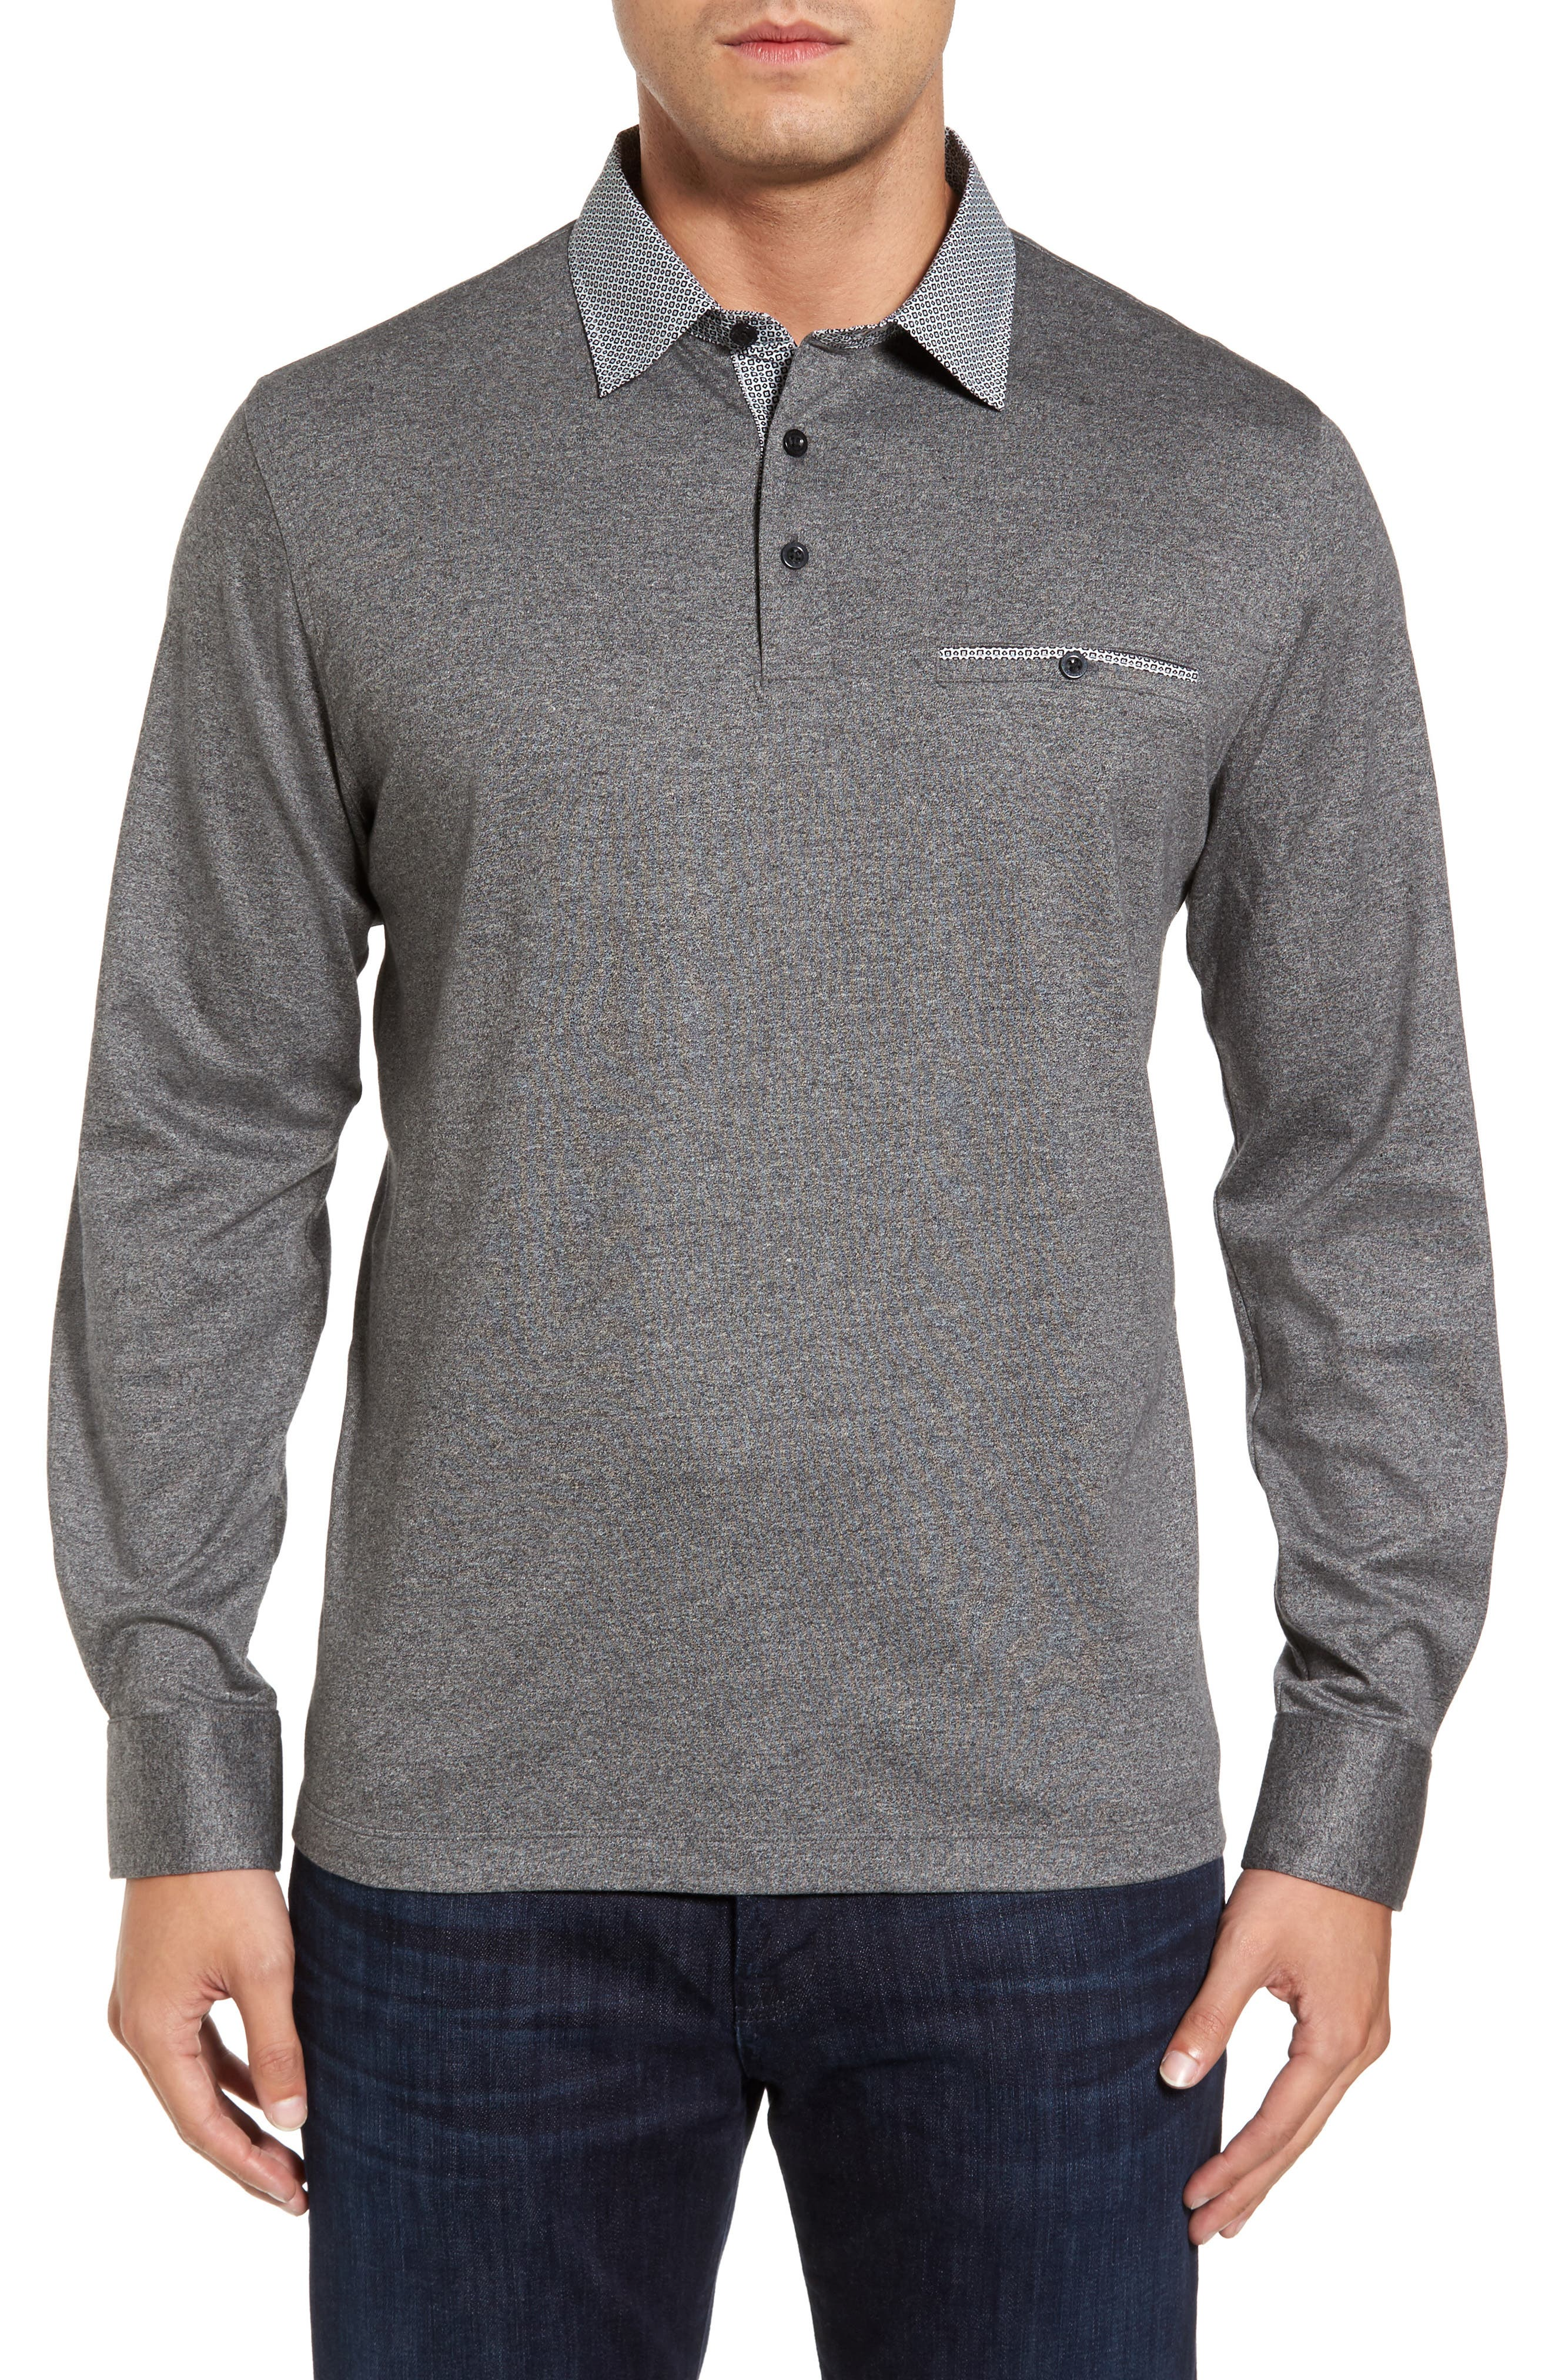 Main Image - Thomas Dean Long Sleeve Woven Trim Polo